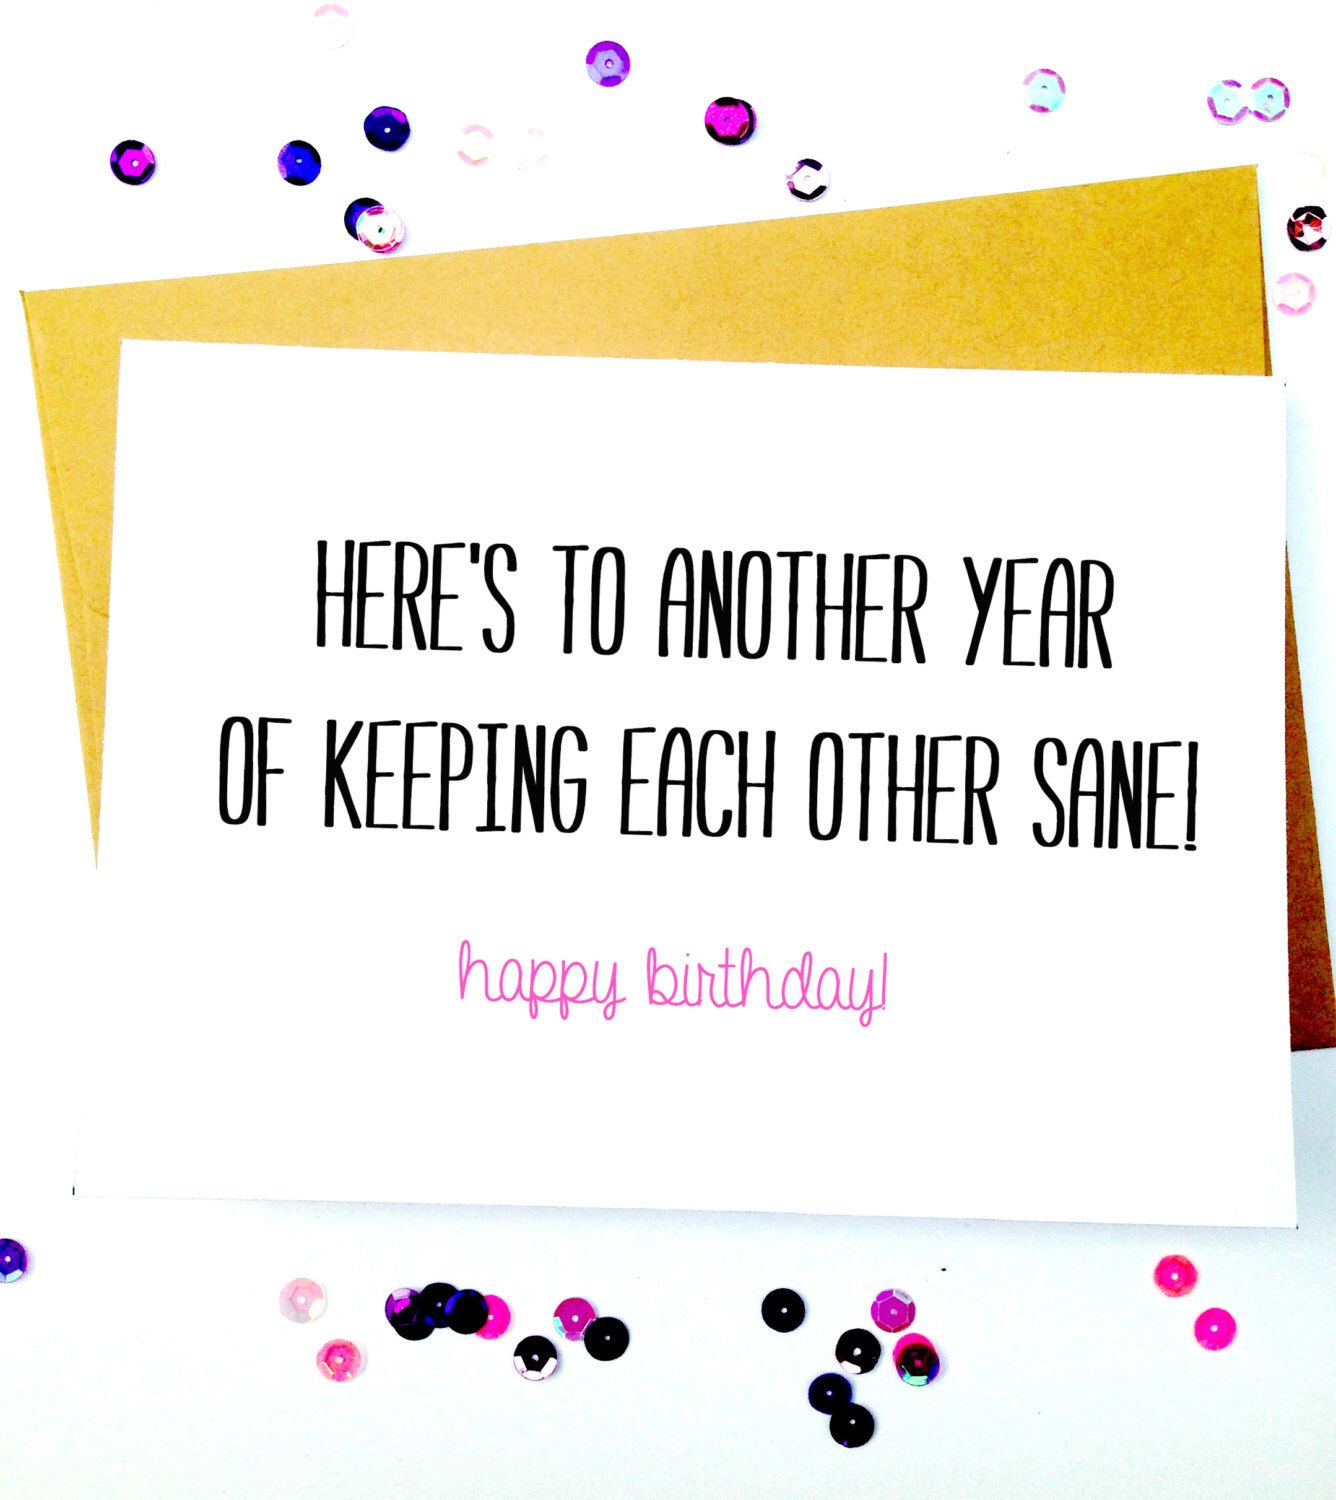 Cute Funny Birthday Cards Birthday Gift Ideas Birthday Cards